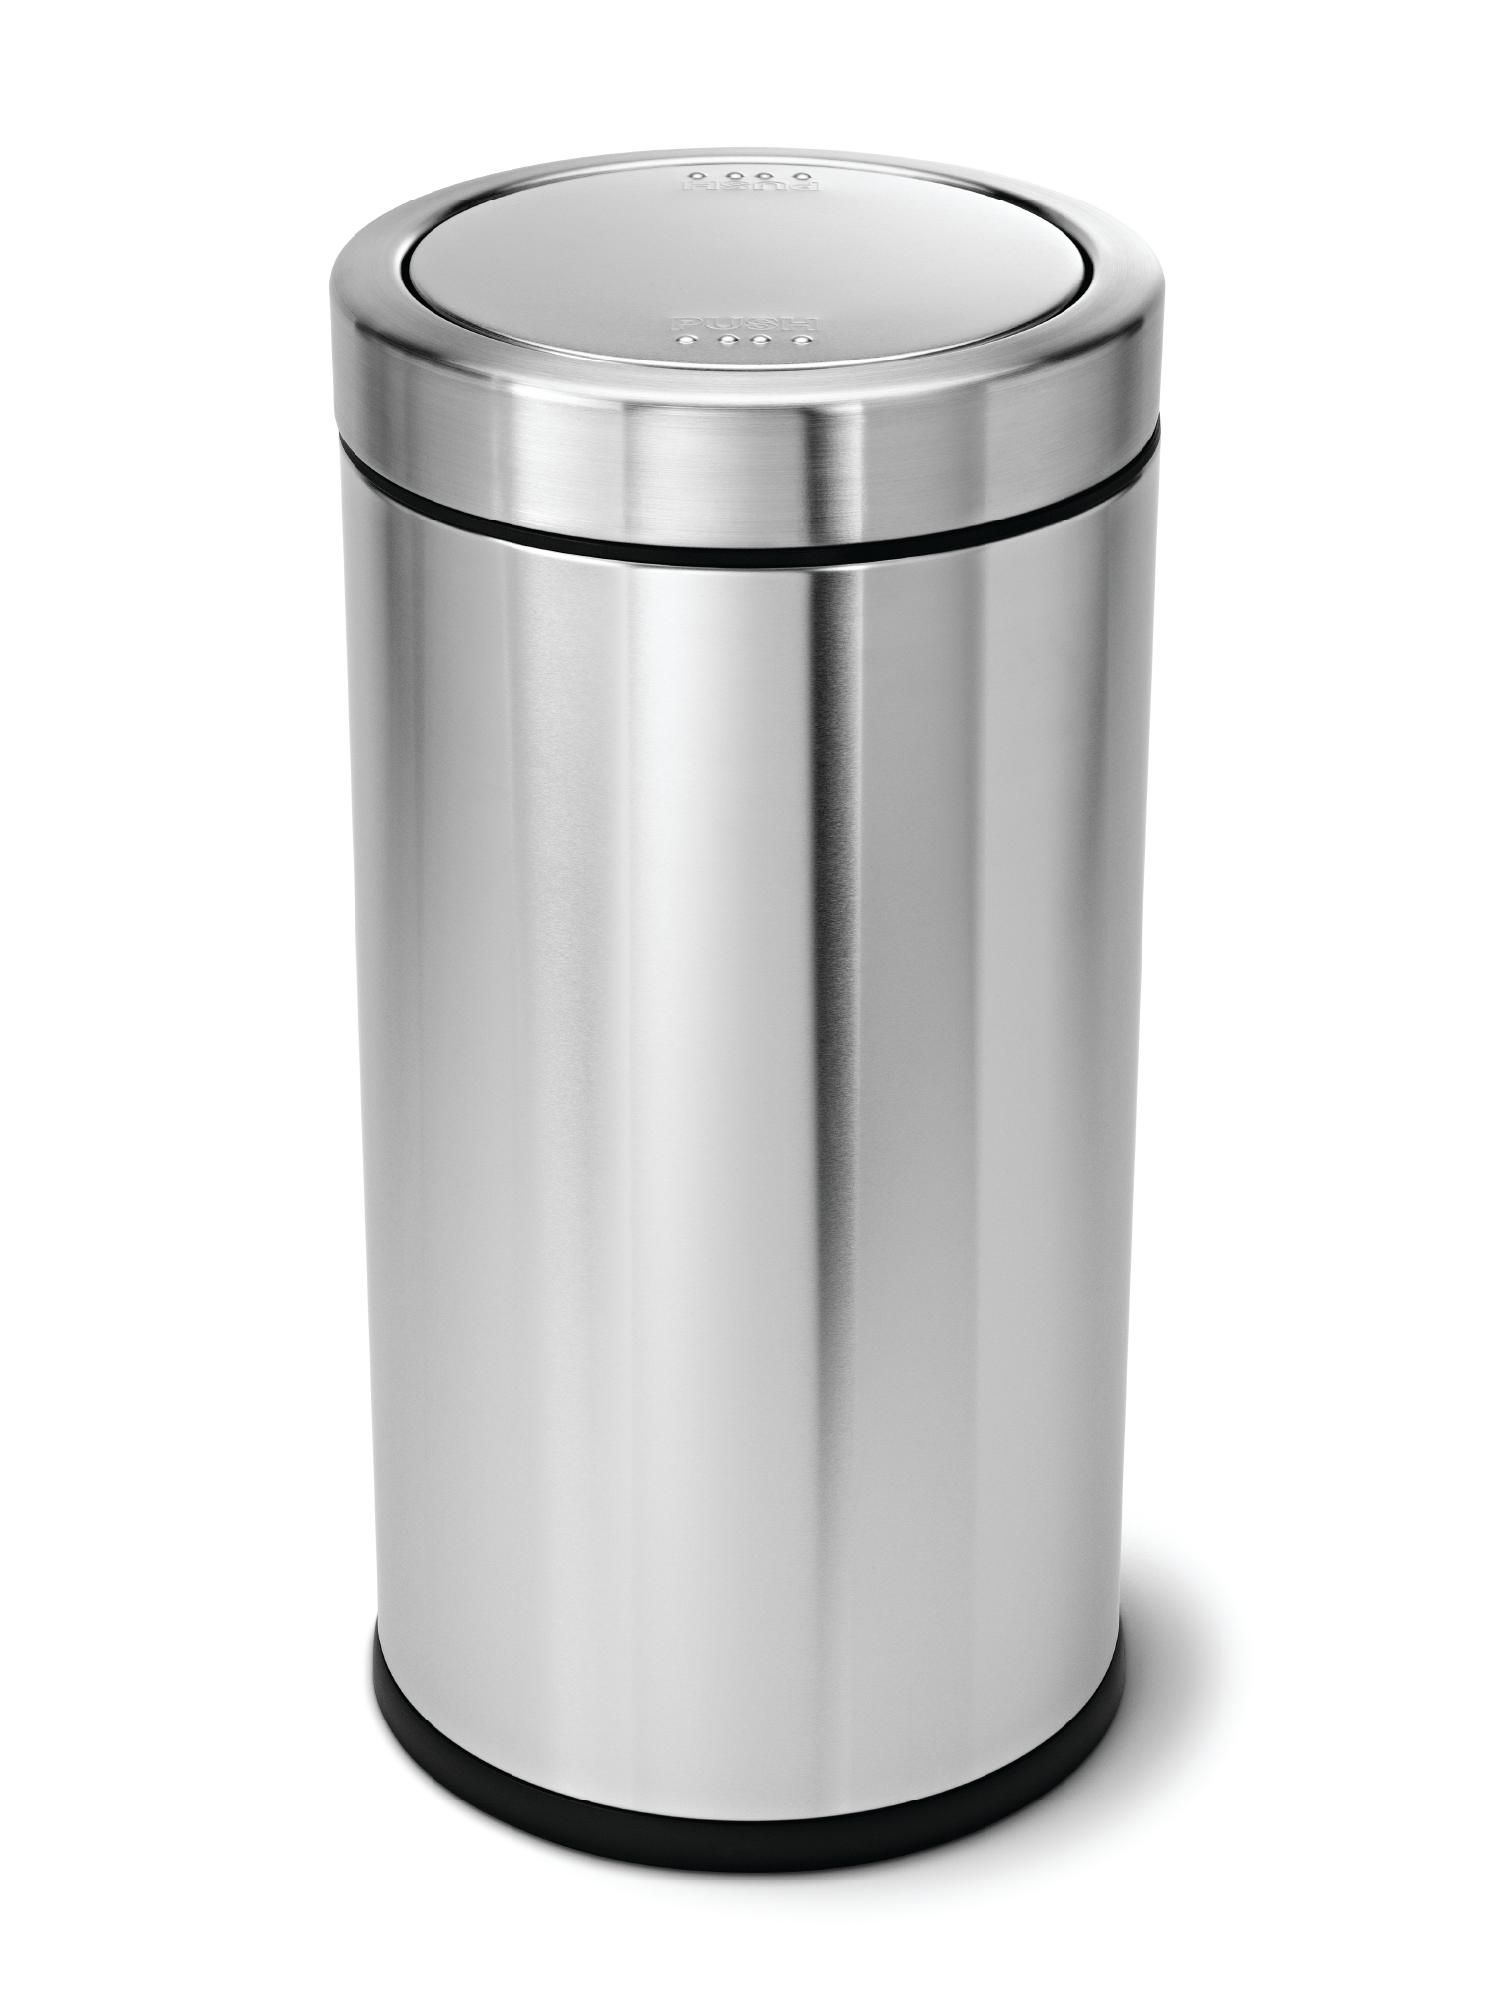 Silver Trash Cans Polder Grocery Bag Trash Can White Stainless Steel